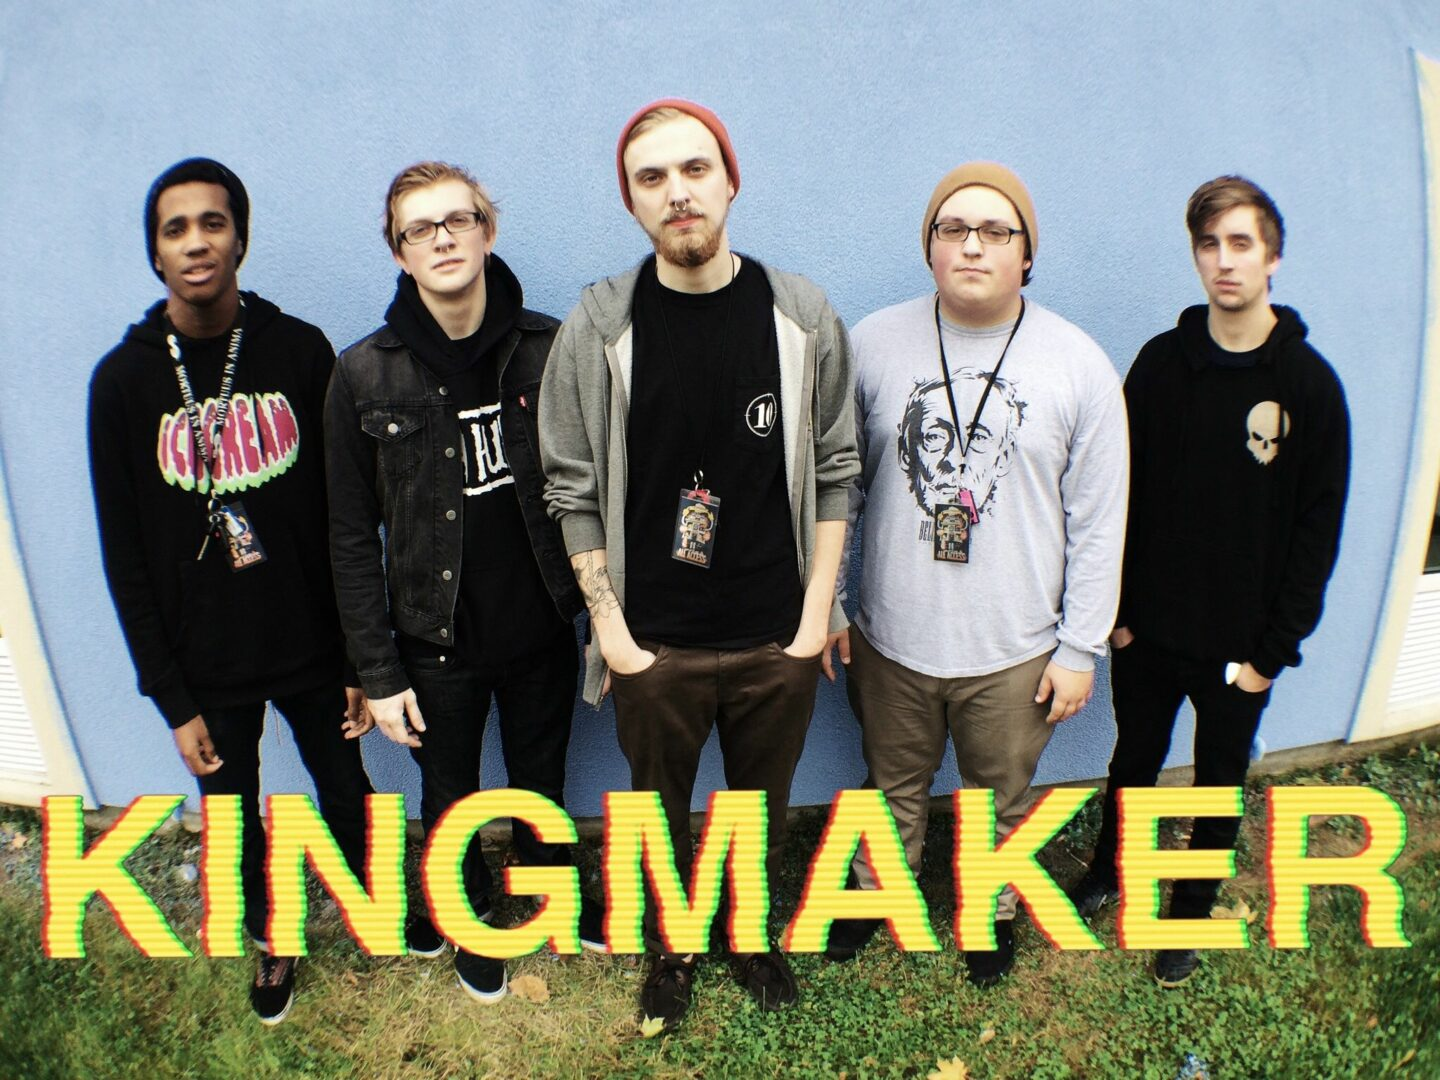 Kingmaker Announces Album Release Tour